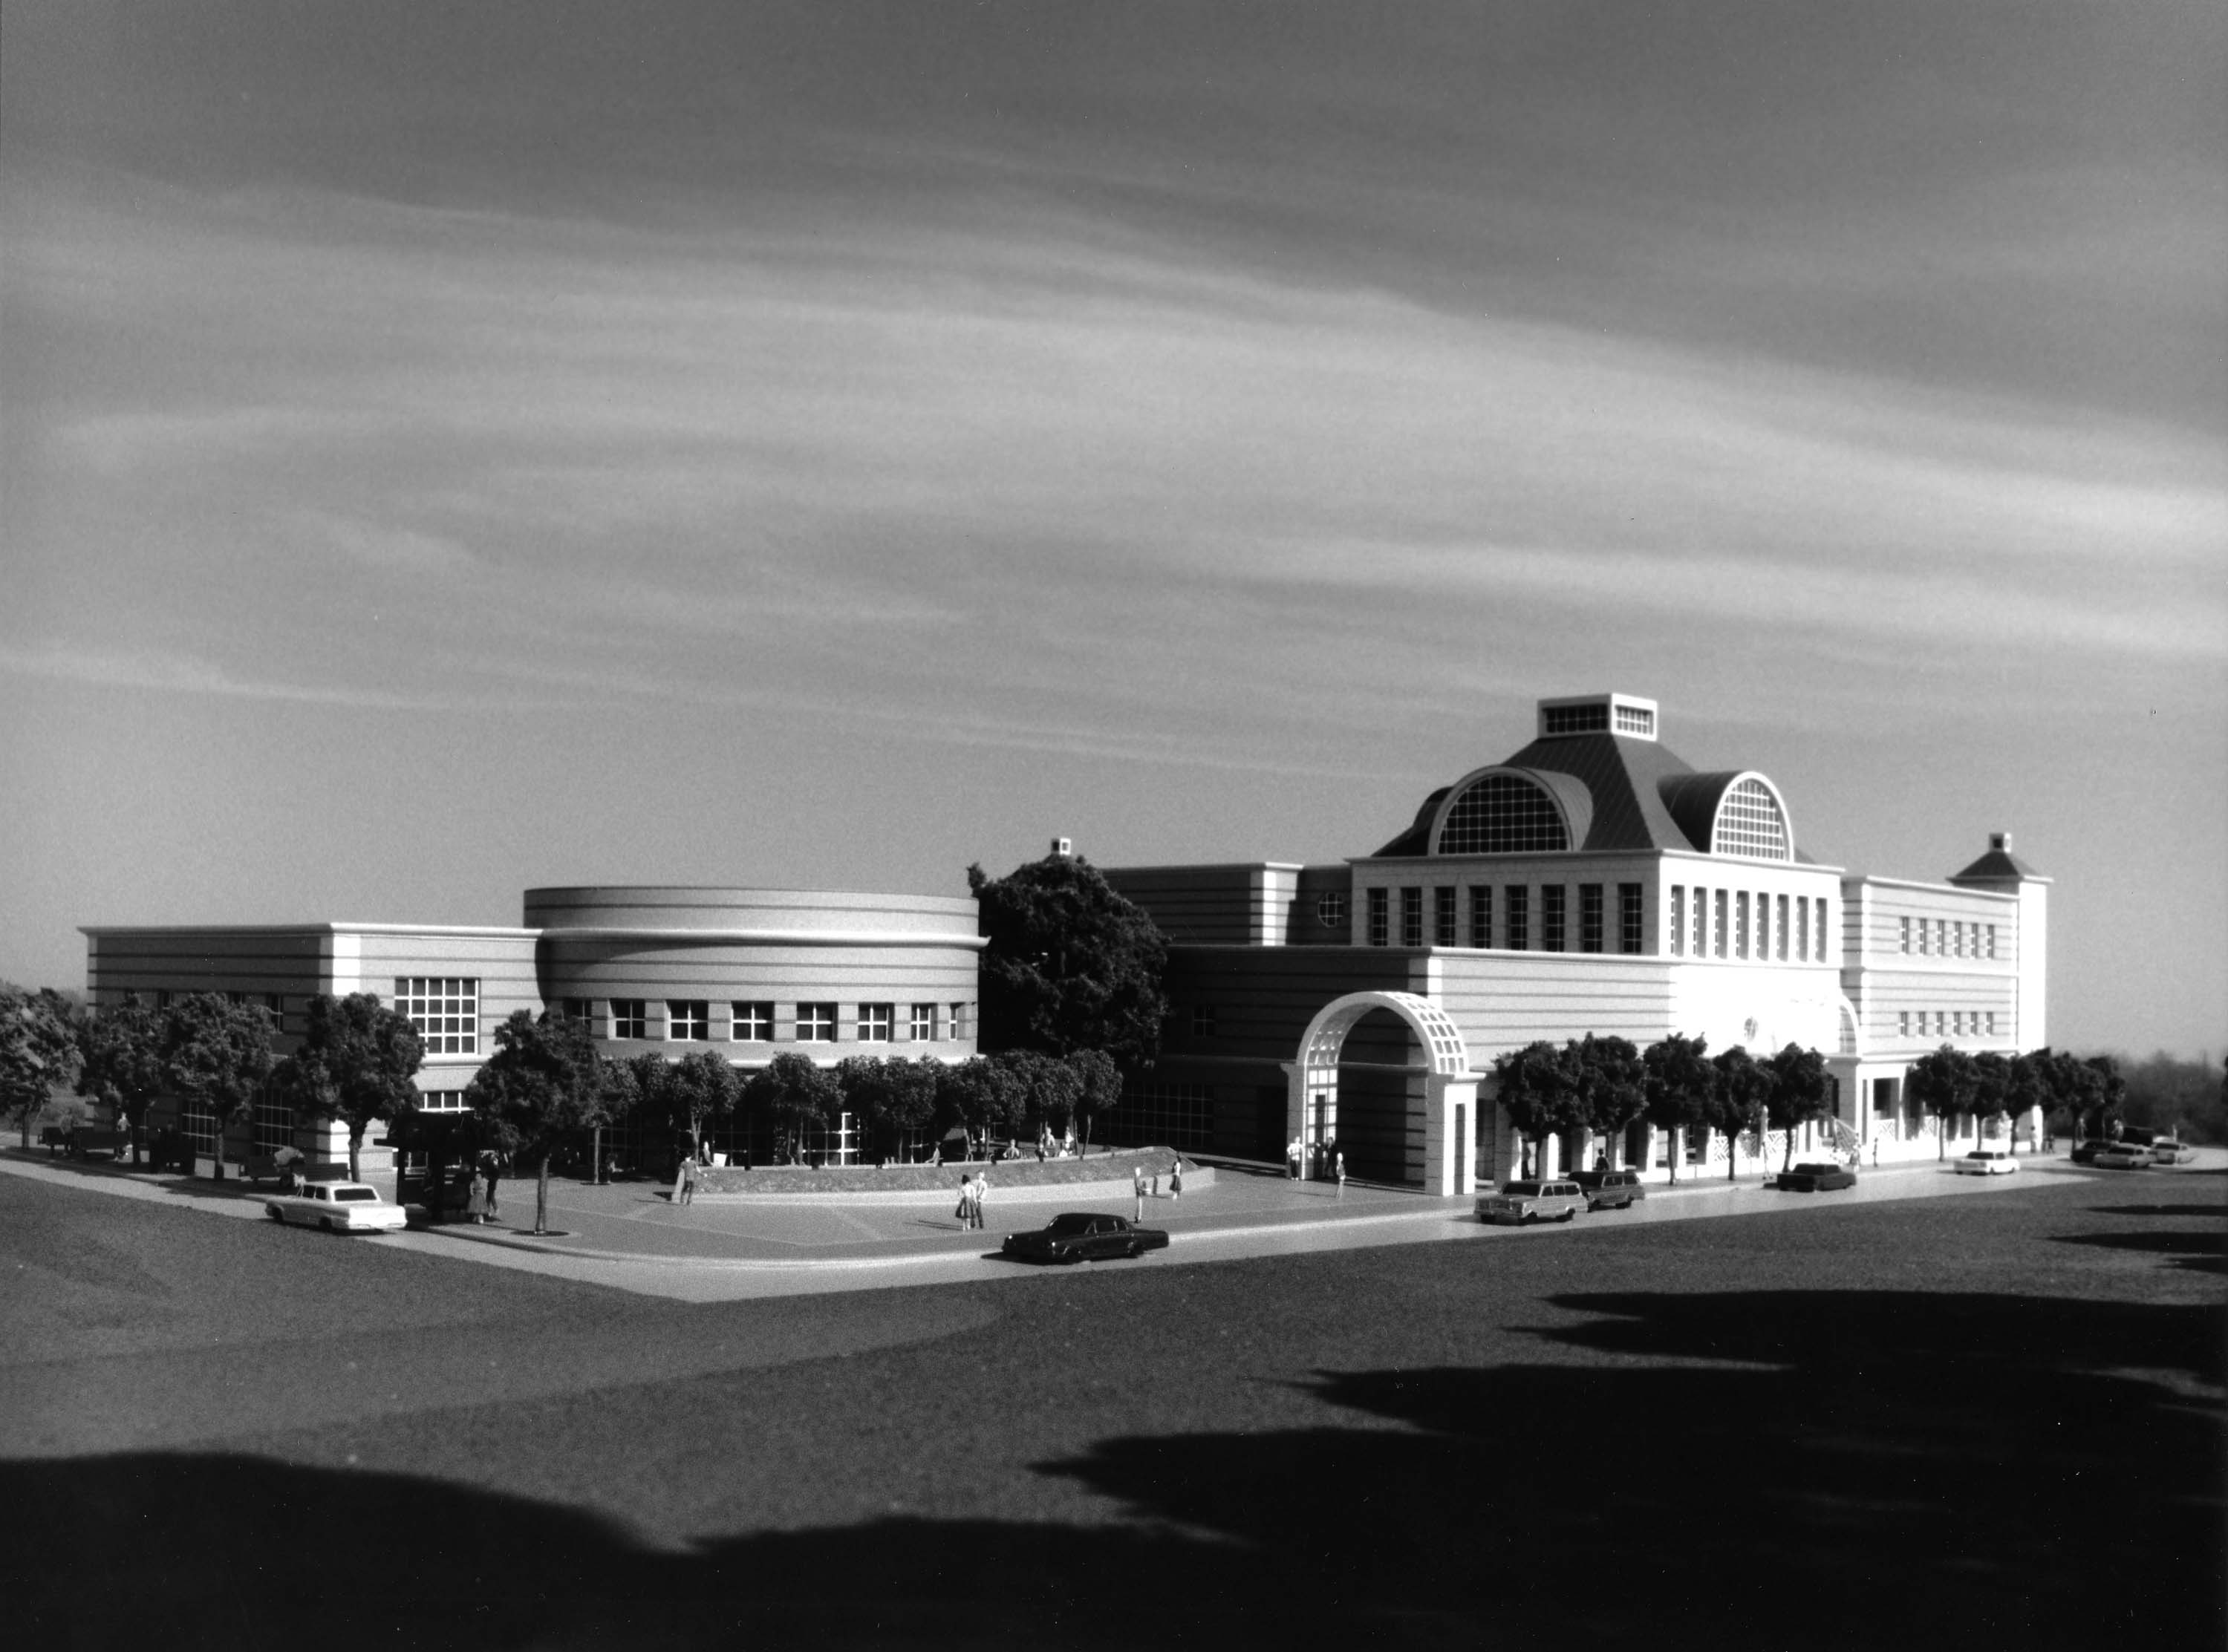 Proposed exterior view of new building